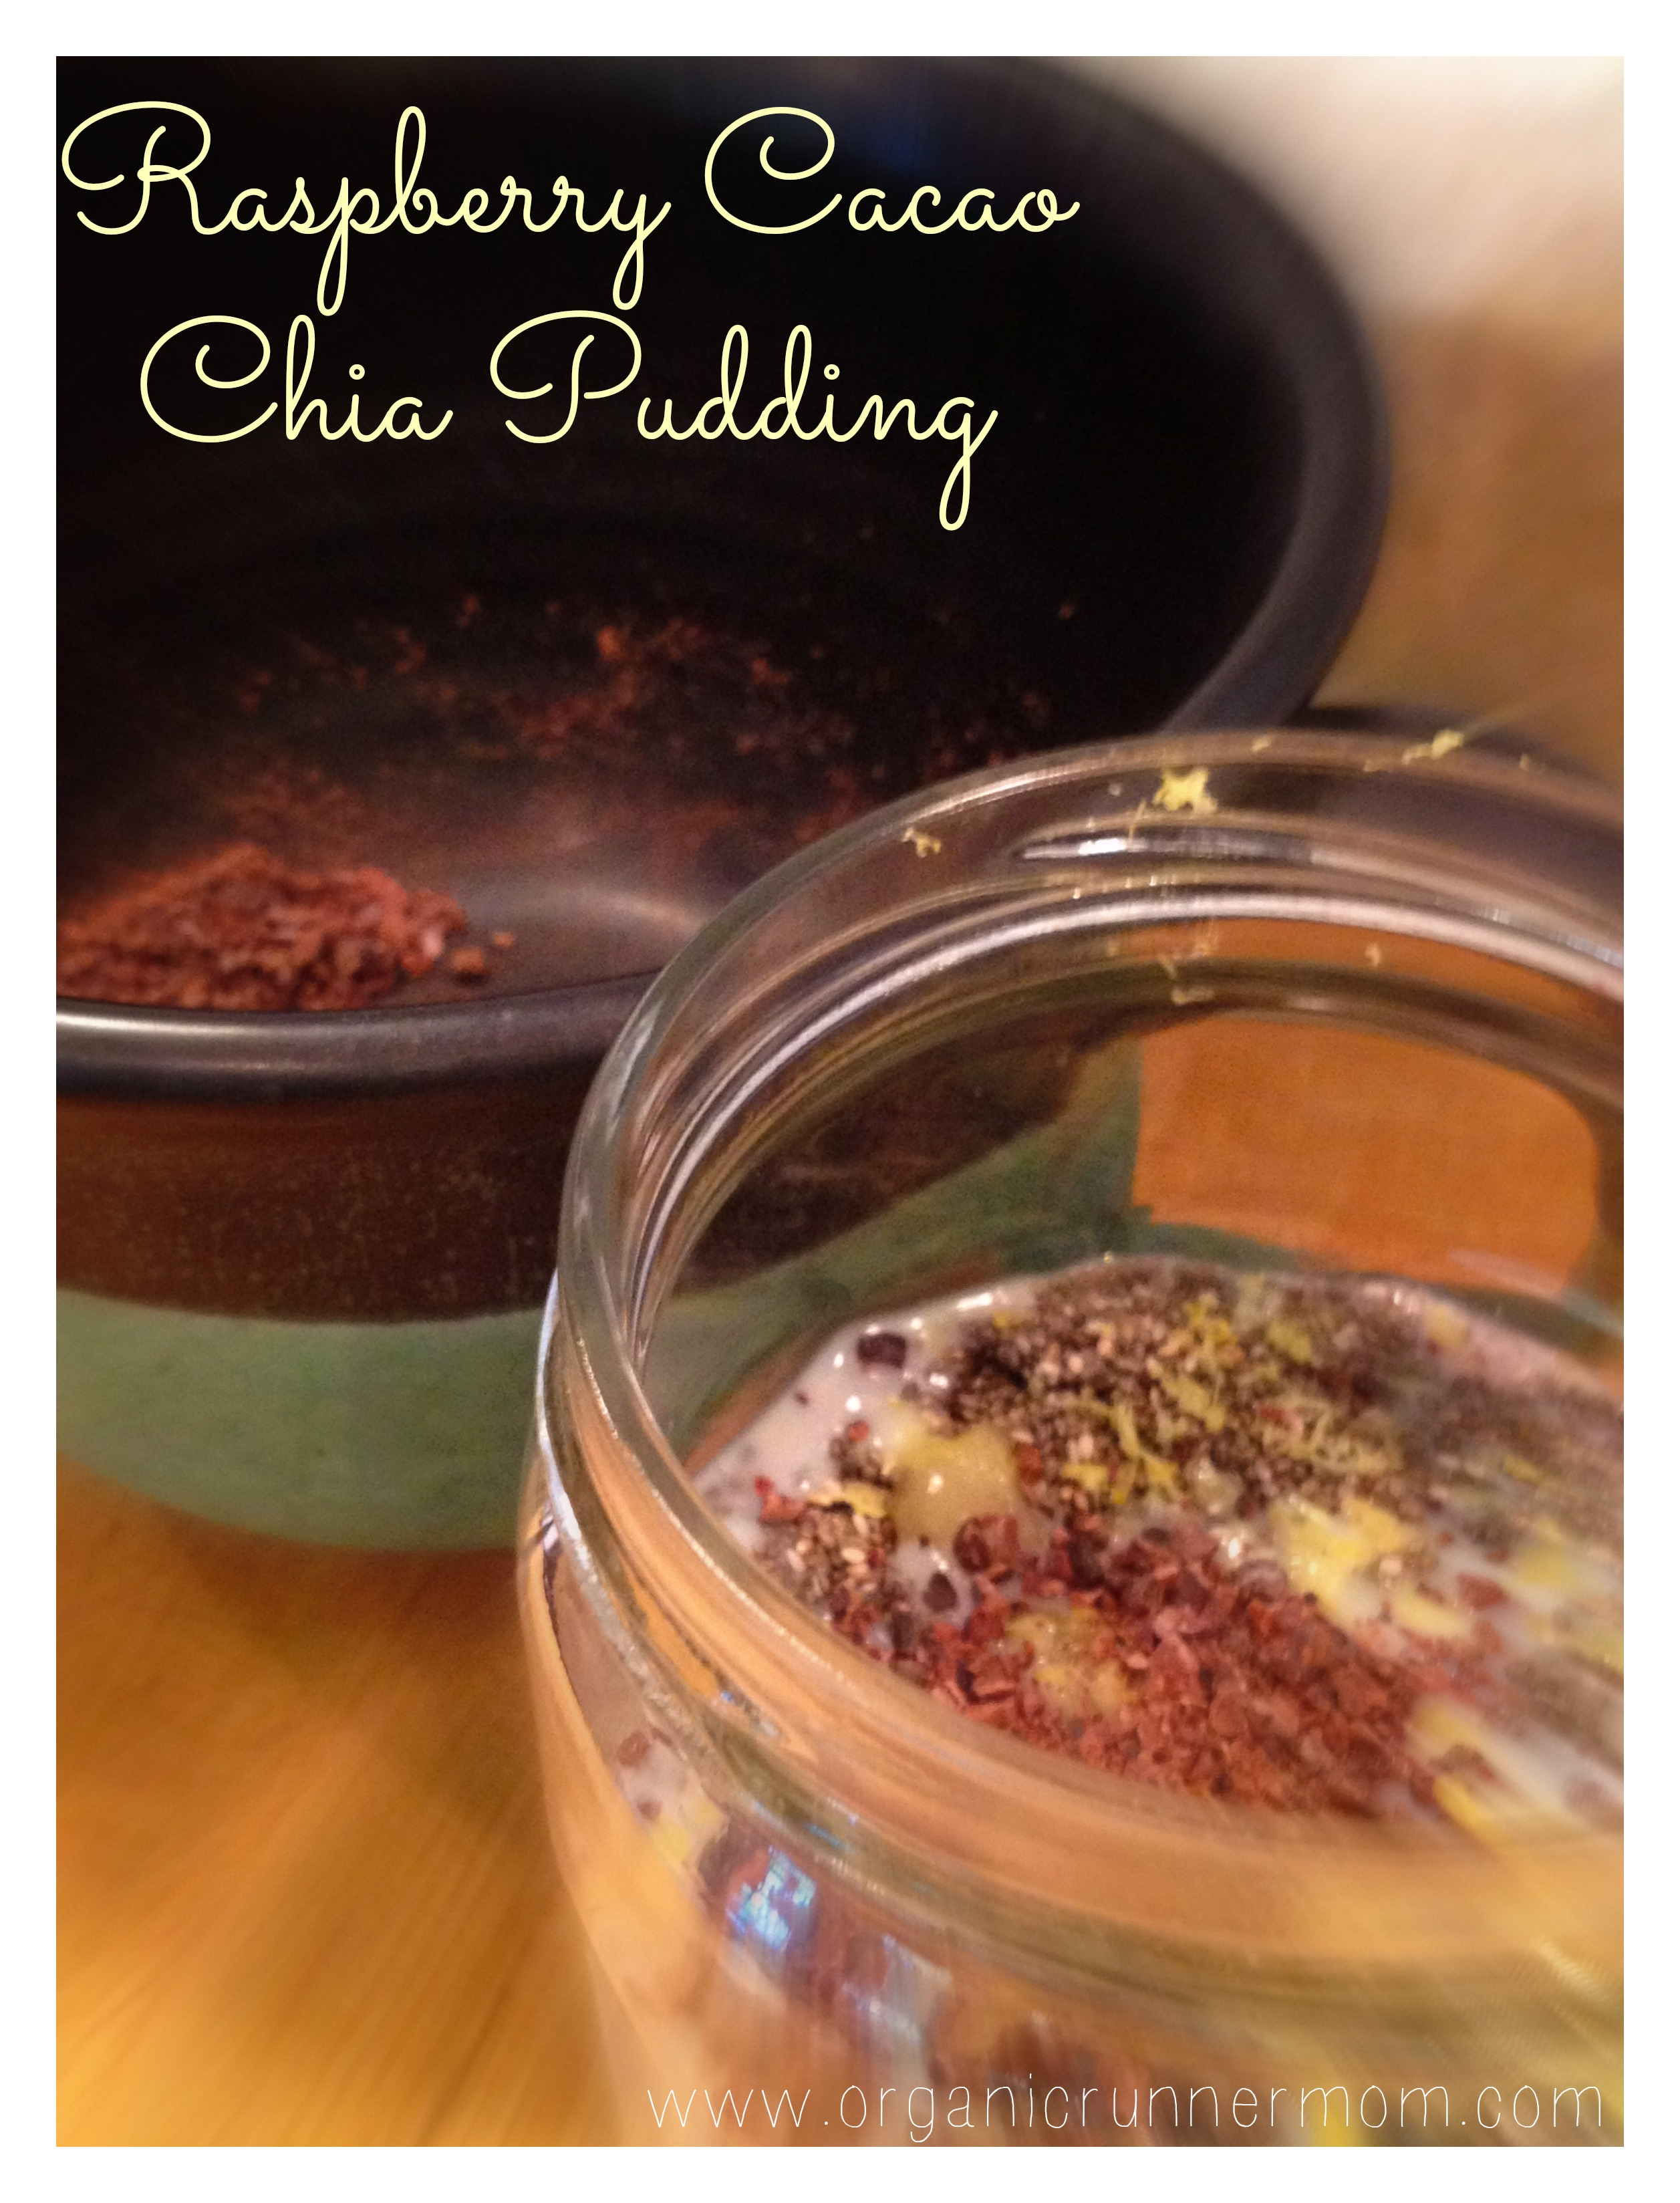 October Unprocessed Fresh Recipe: Raspberry Cacao Chia Pudding